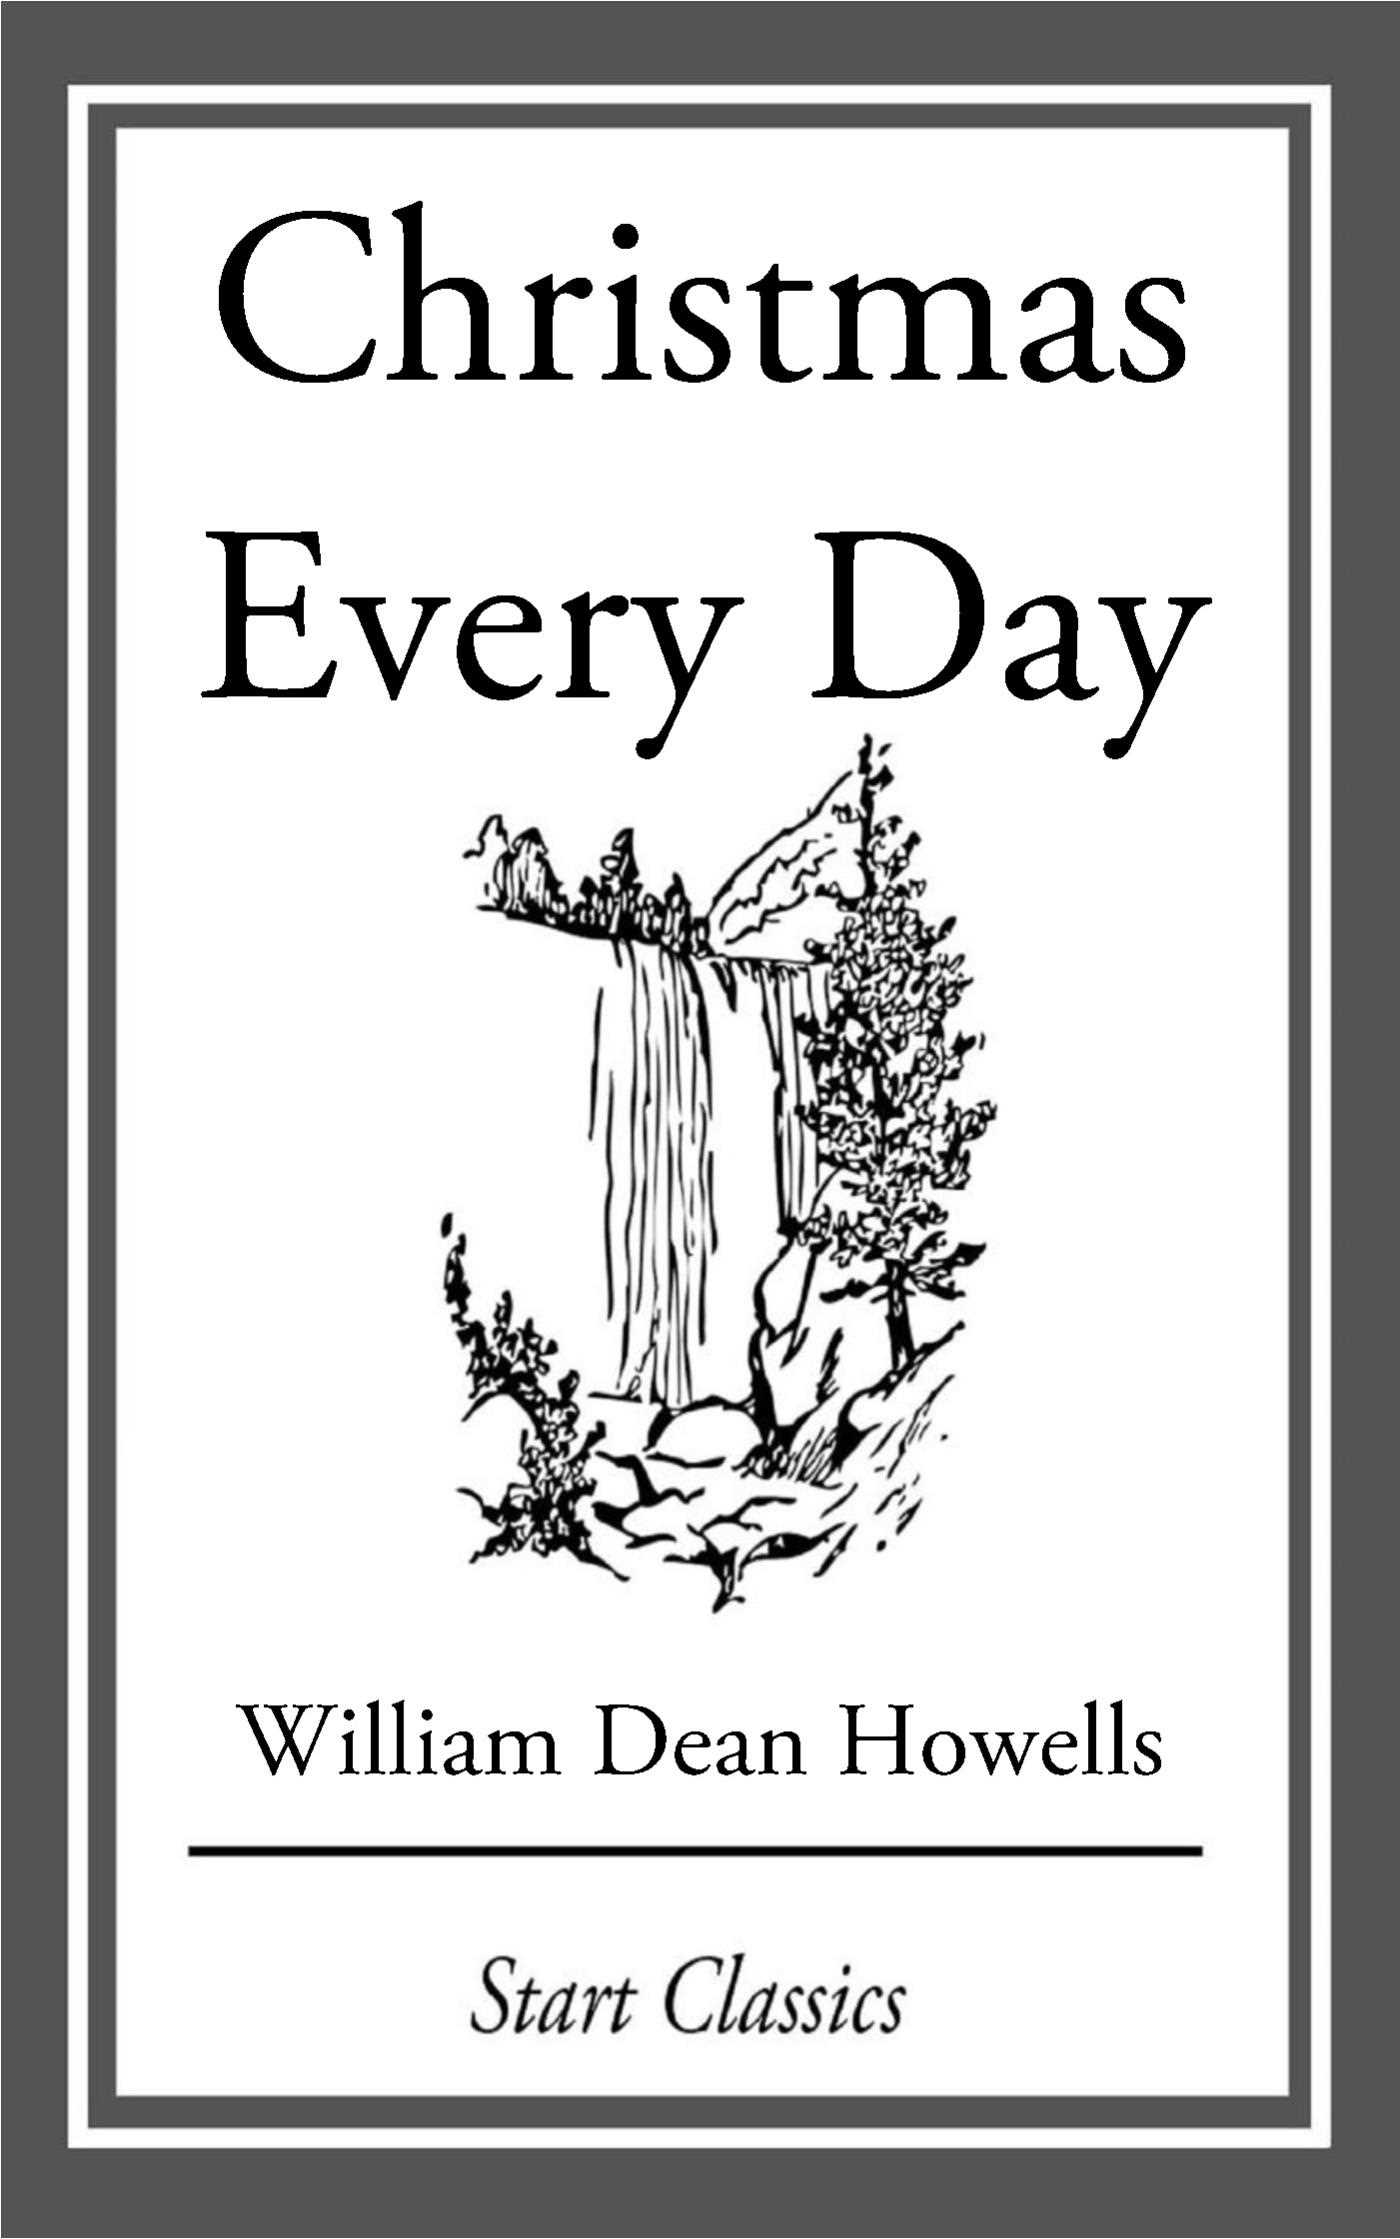 Christmas Every Day eBook by William Dean Howells | Official ...